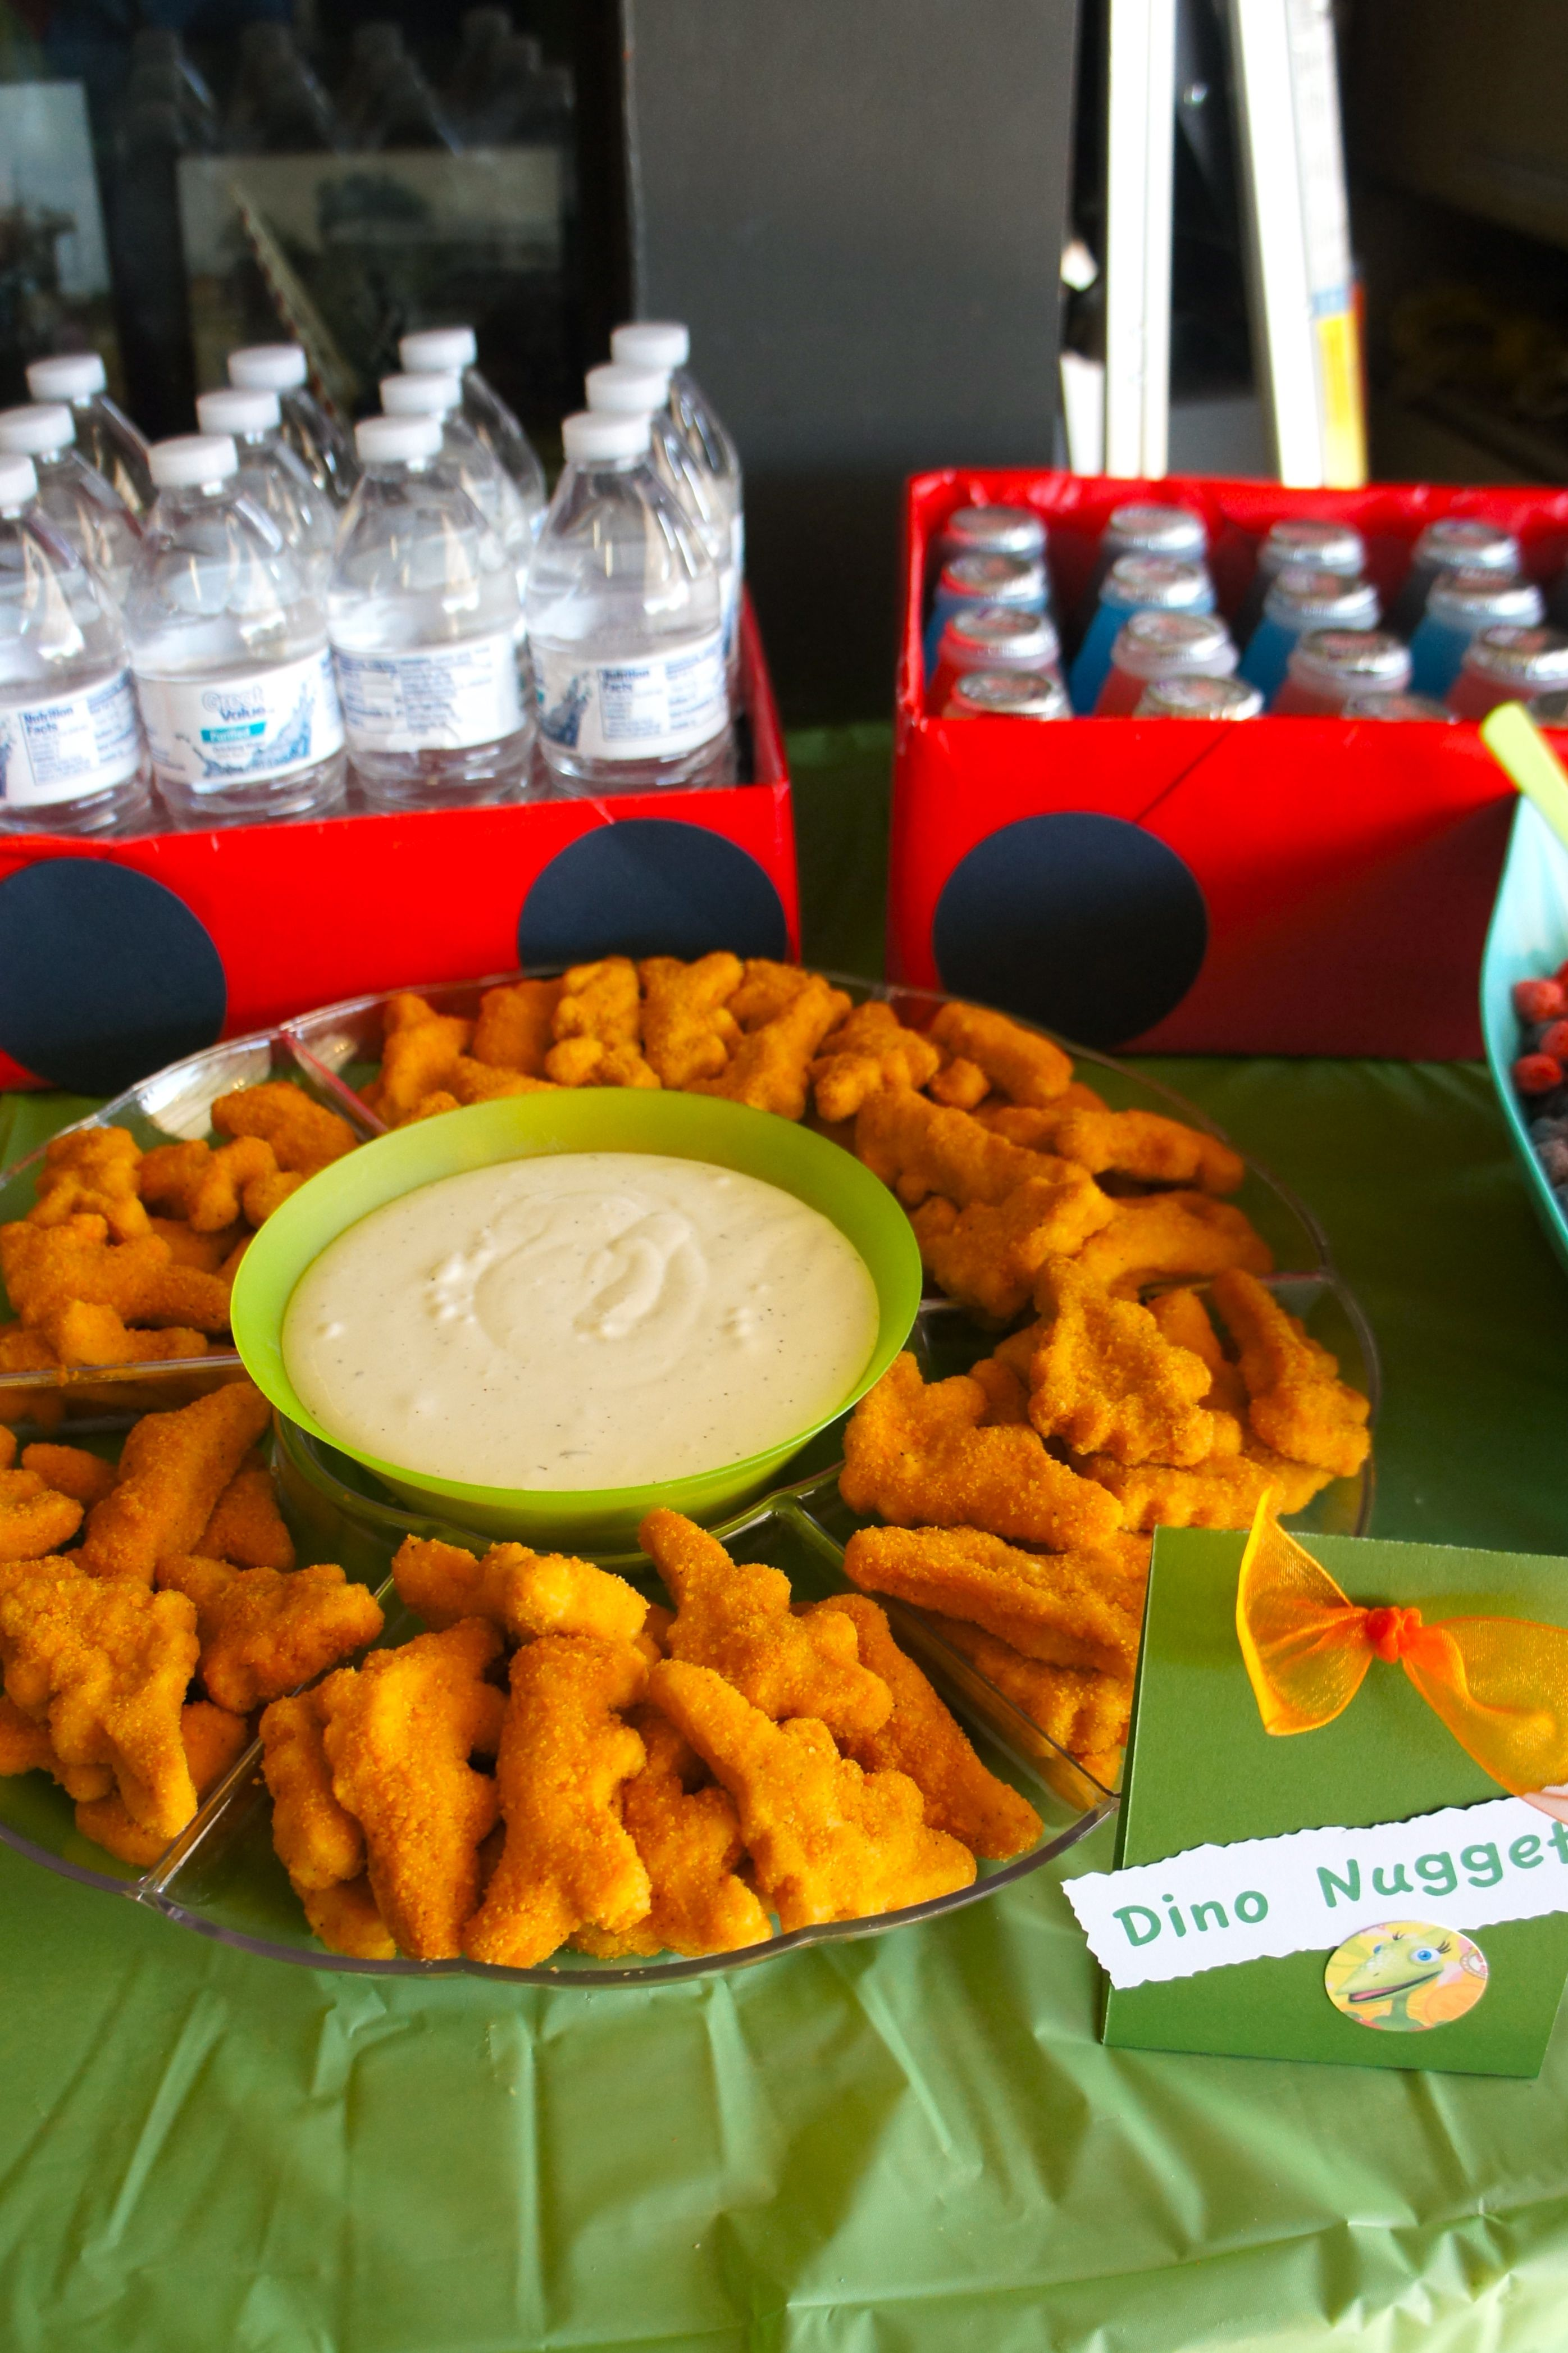 Dinosaur Train Birthday Party Food Things WE have made